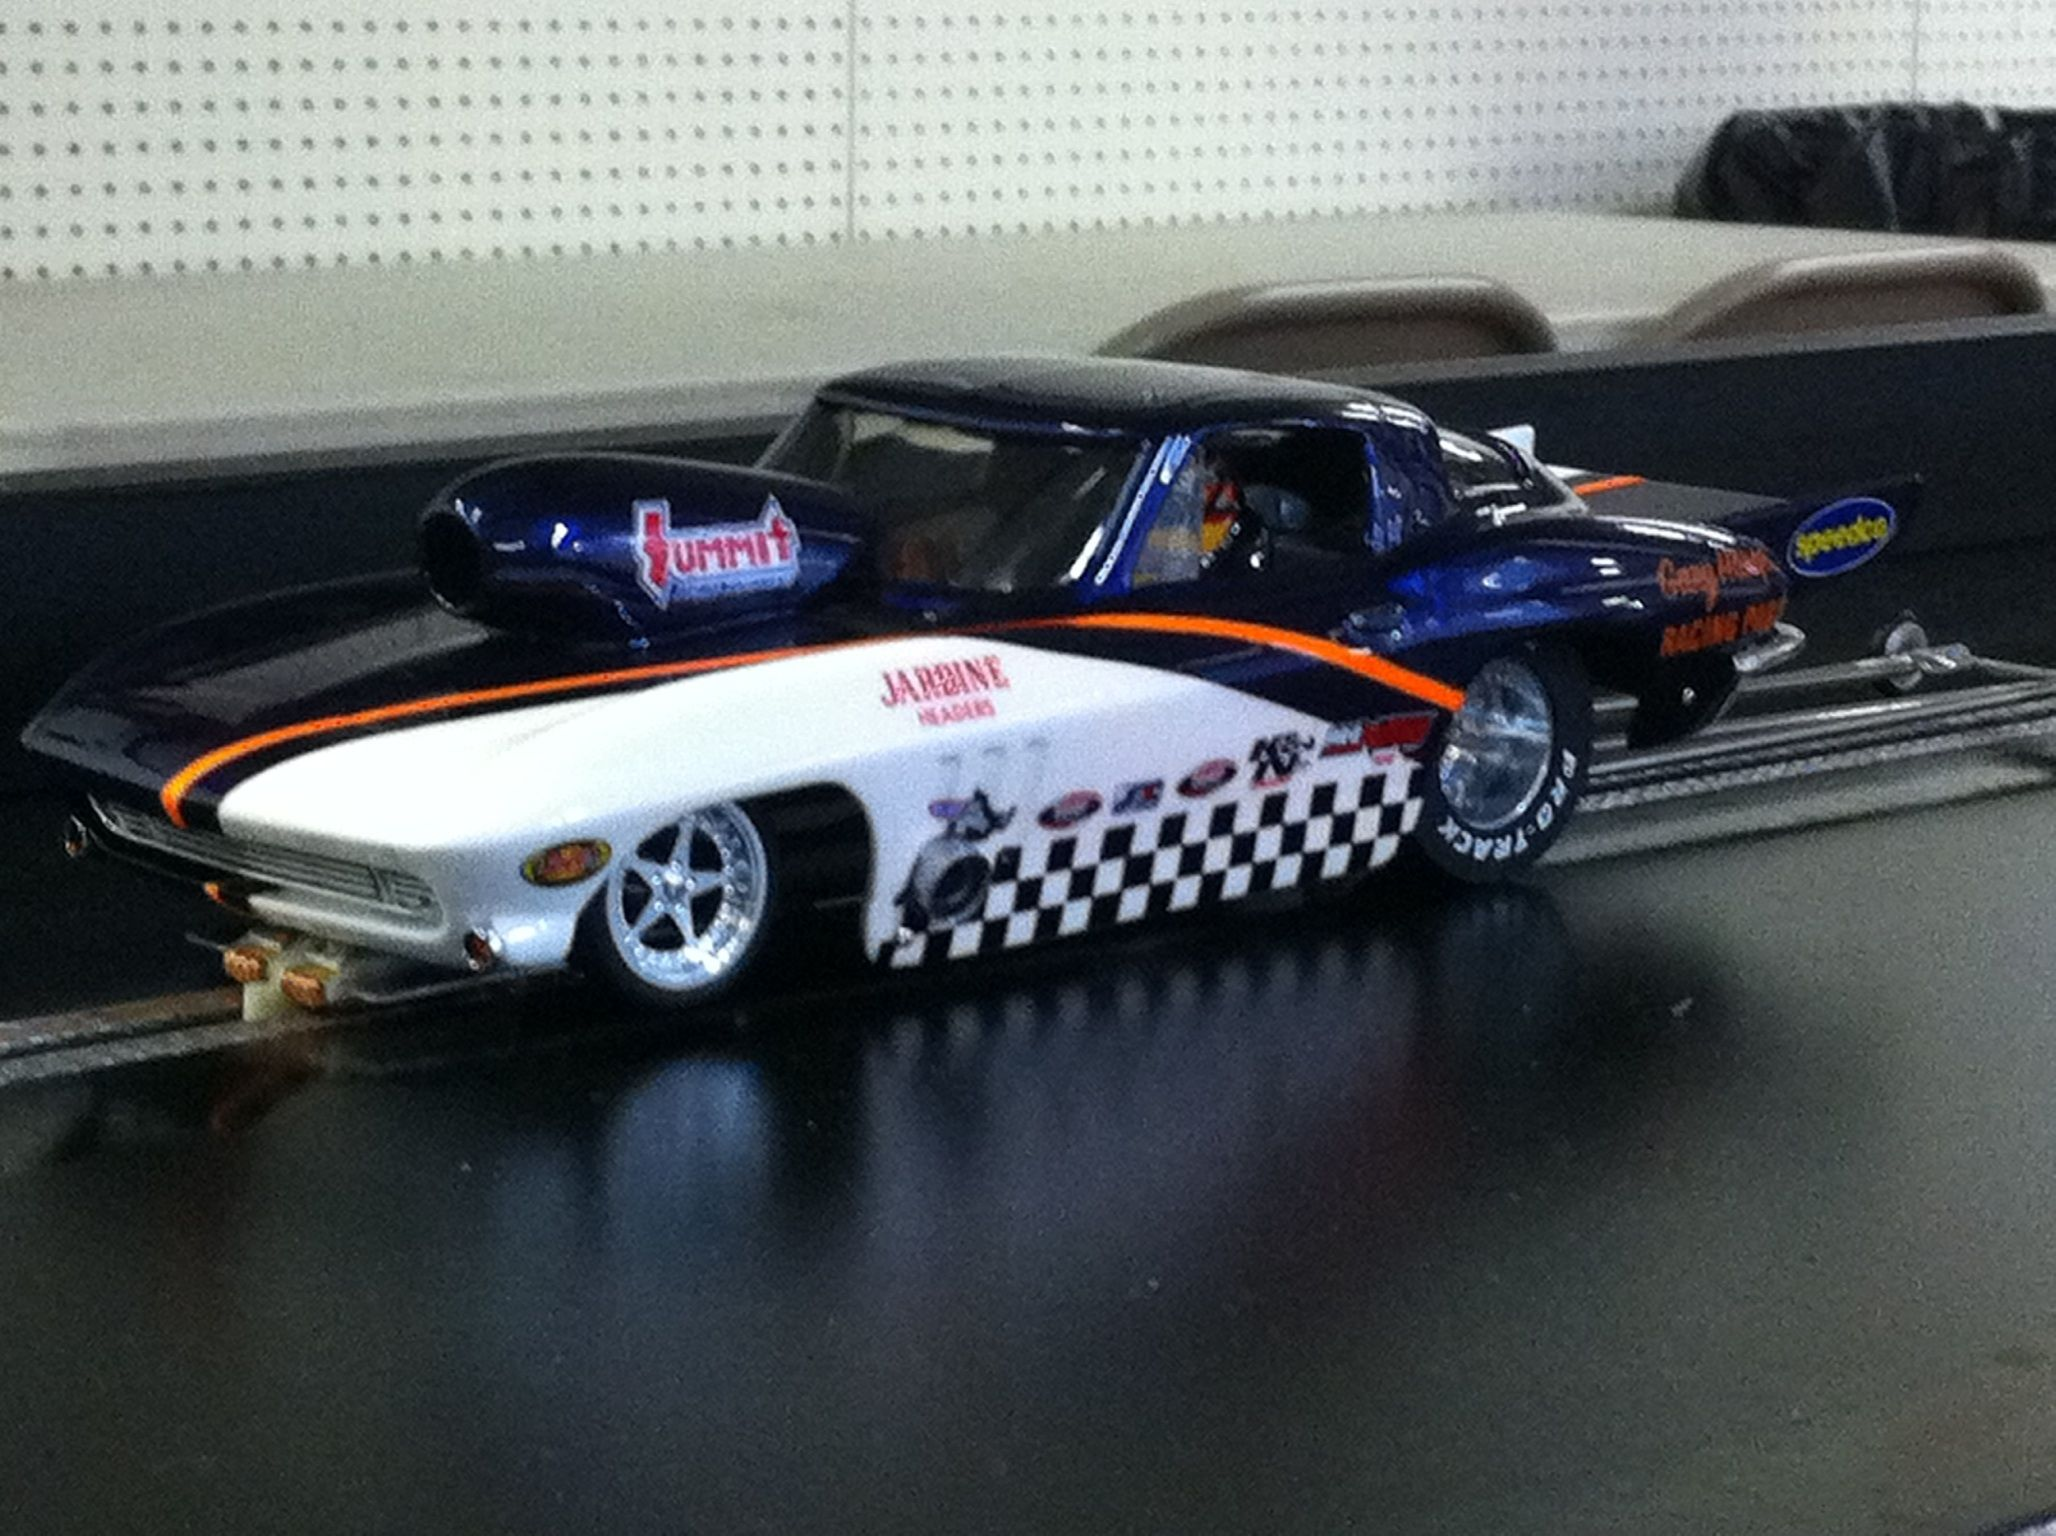 Drag Slot Car built by Sheaves Racing Slots, one of my